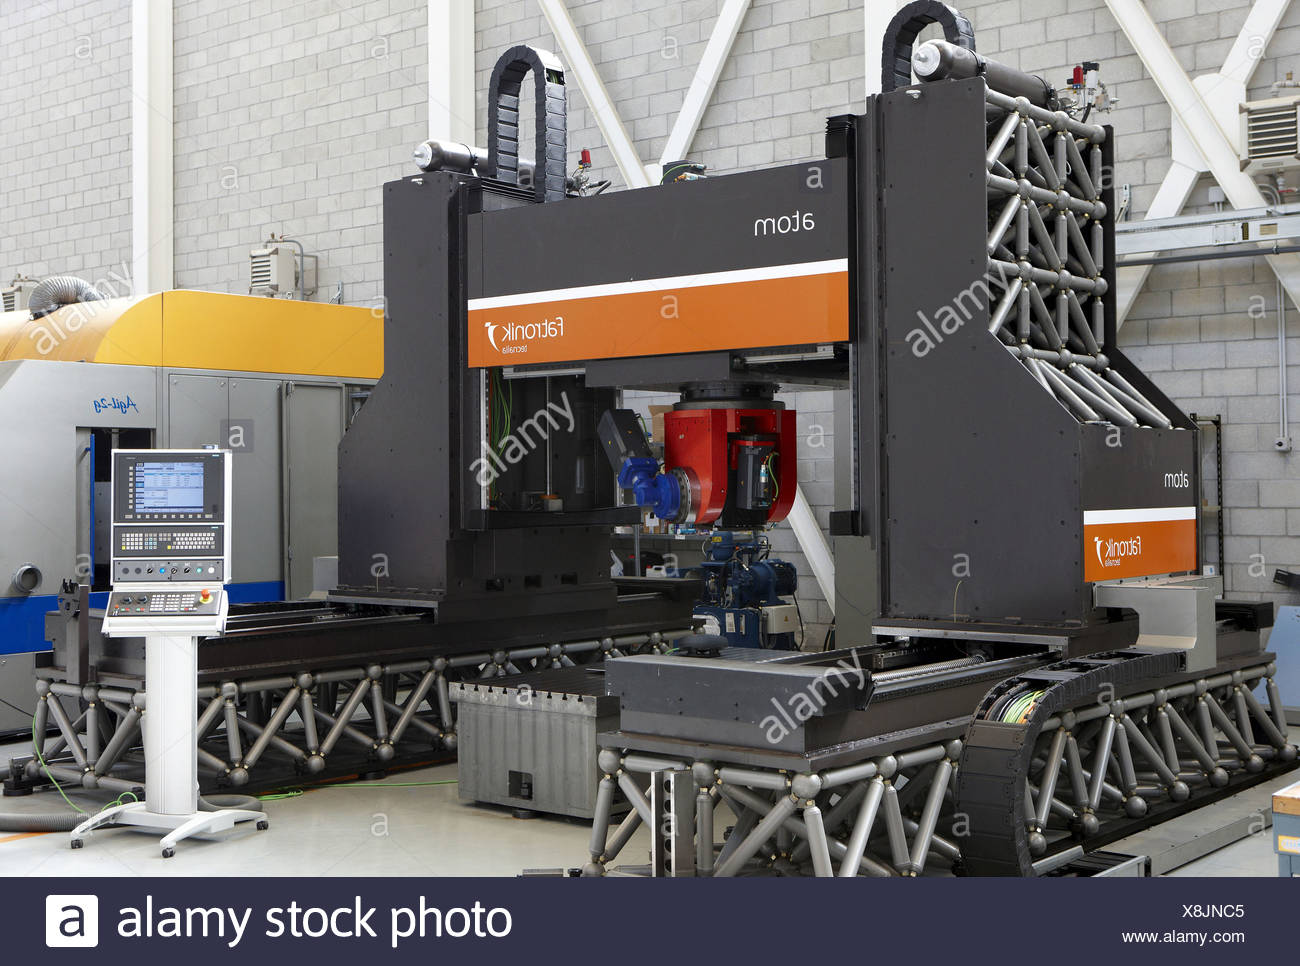 Atom friction stir welding machine, Fatronik-Tecnalia, Research and Technology Center, Donostia, Basque Country, Spain - Stock Image